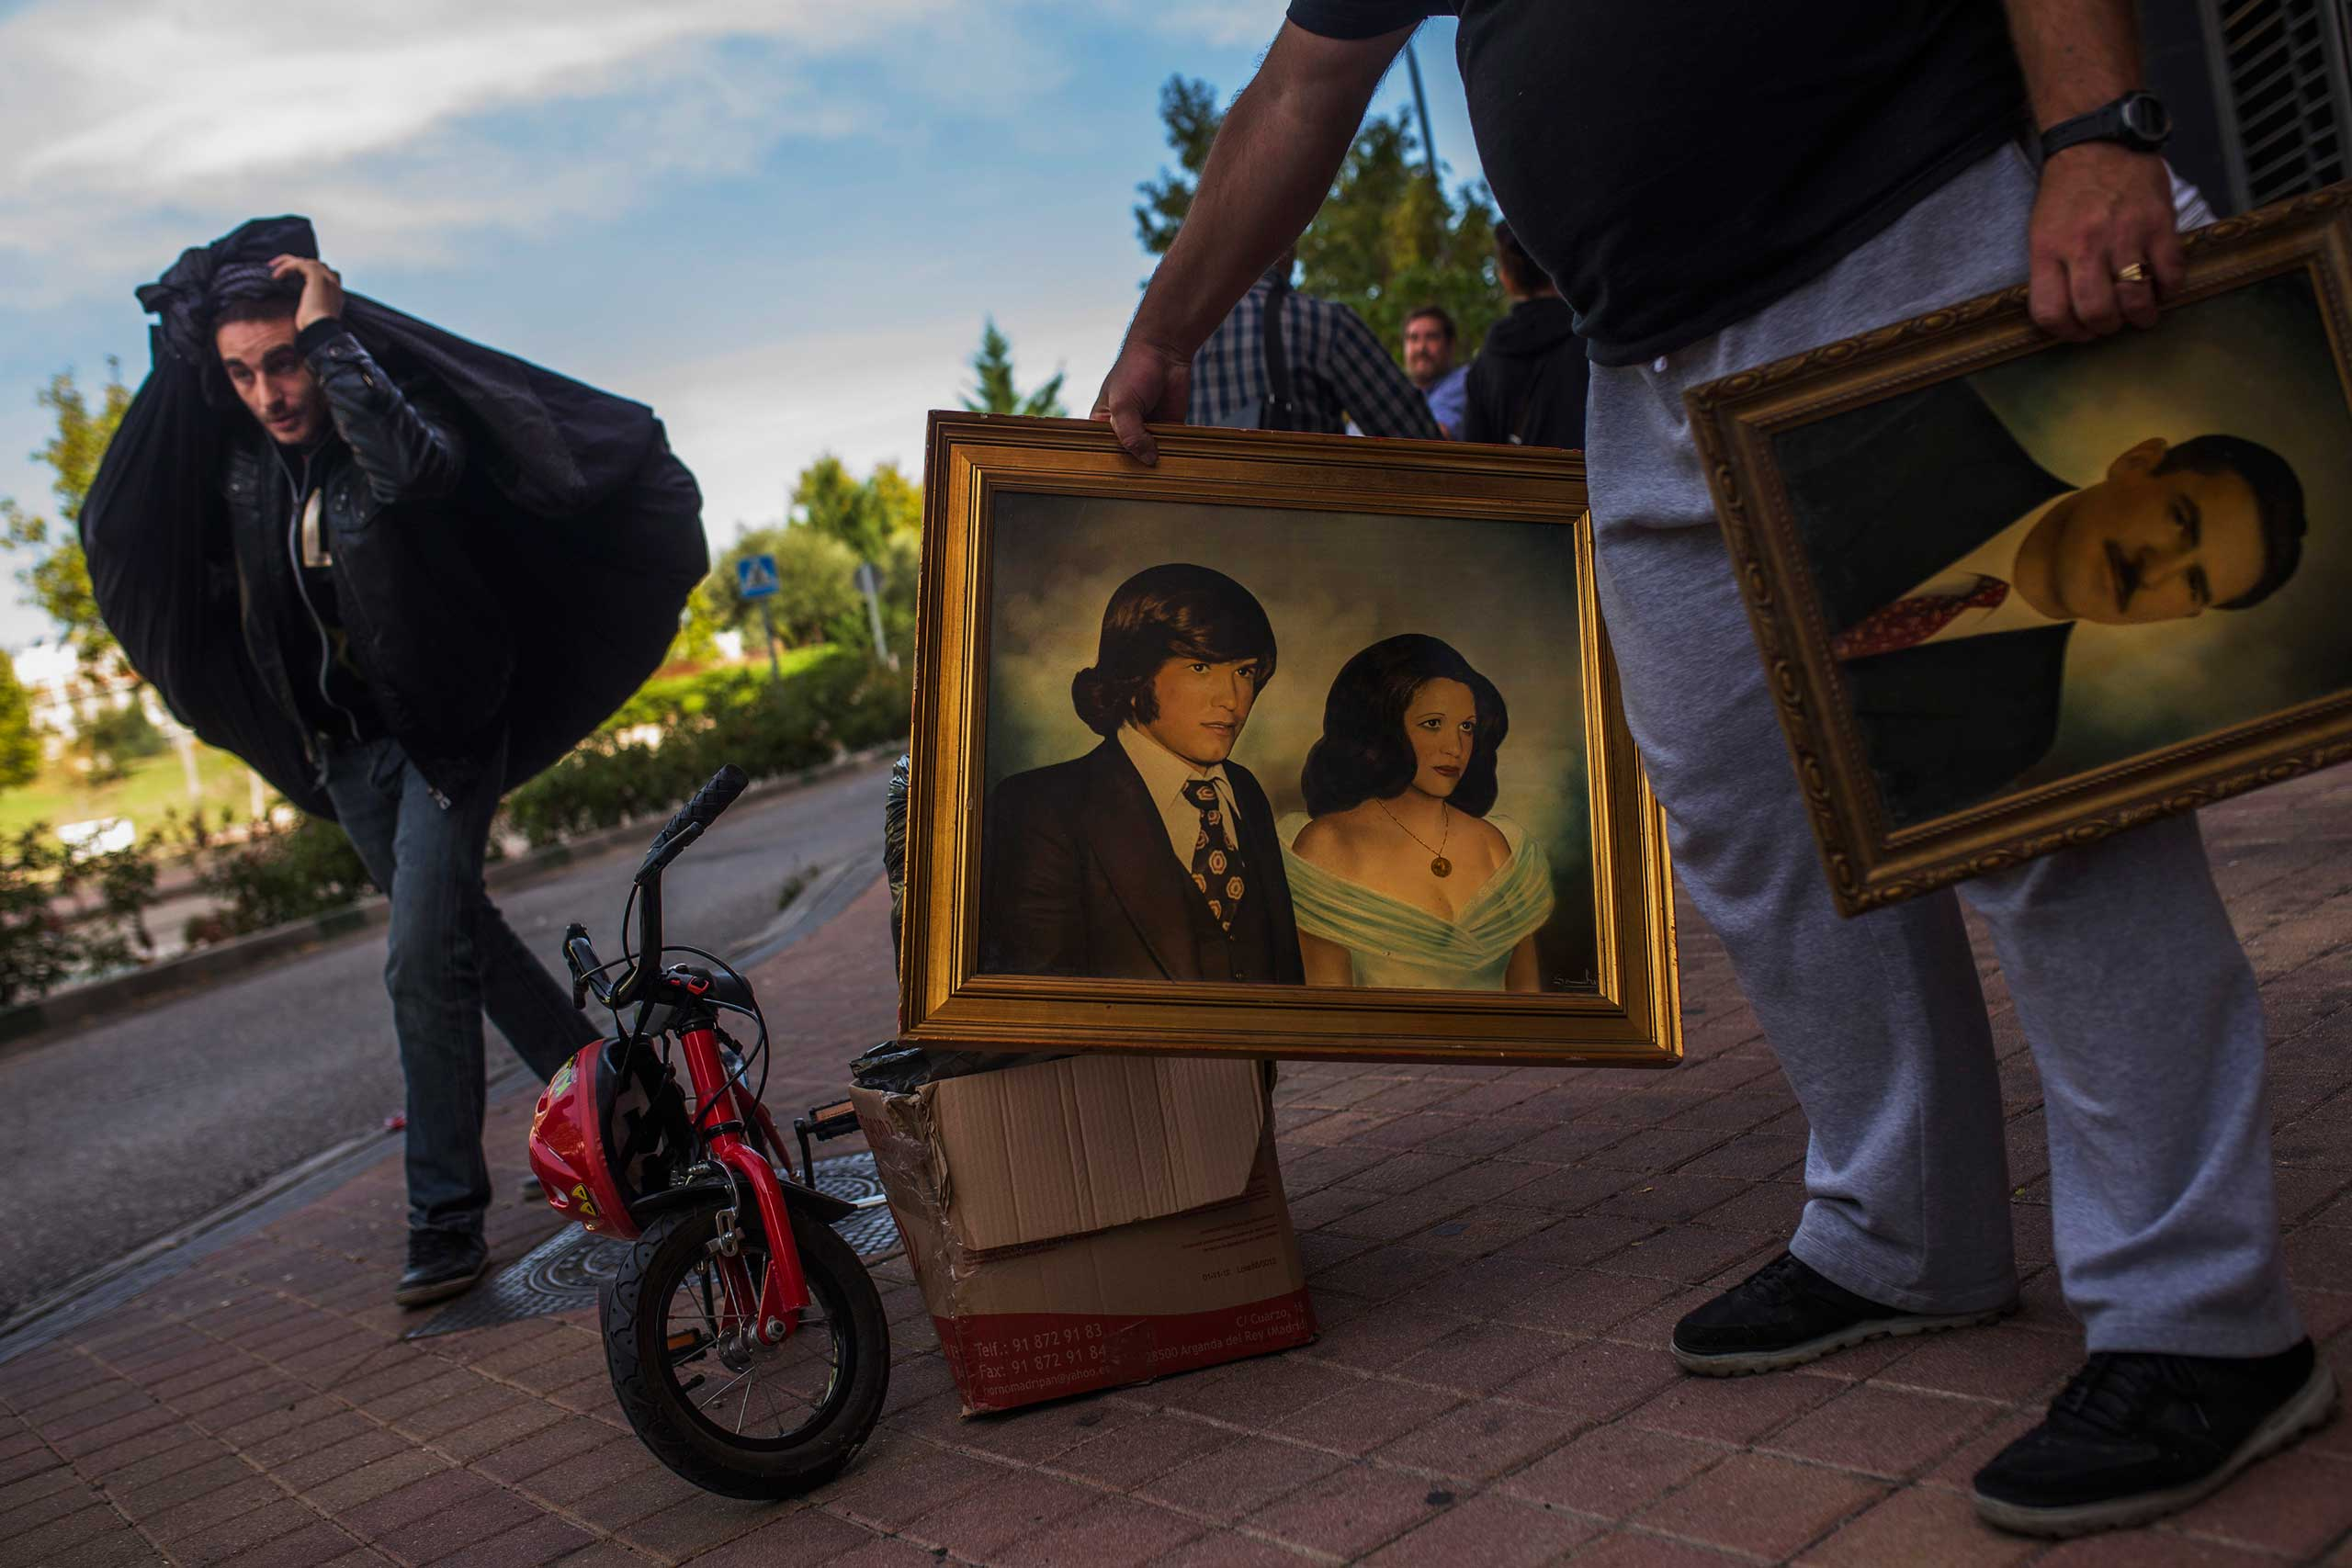 Friends and activists carry pictures and bags as they help Veronica Labradas to move out after the police evicted her family in Madrid. Oct. 2014.